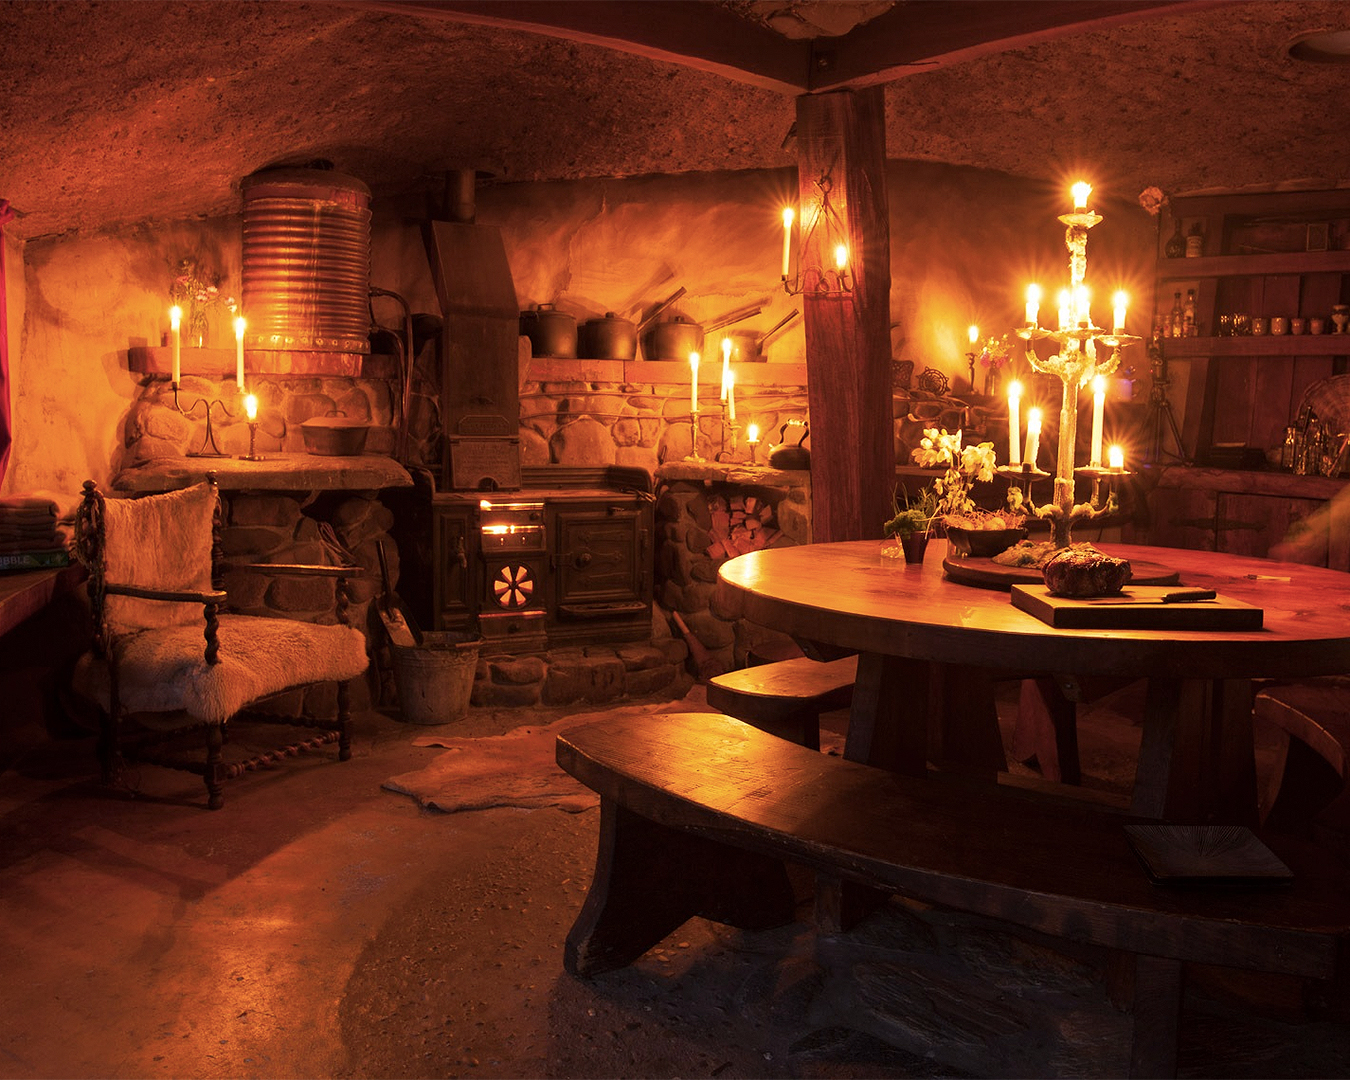 The cosy hobbit-like interior at Underhill Valley.